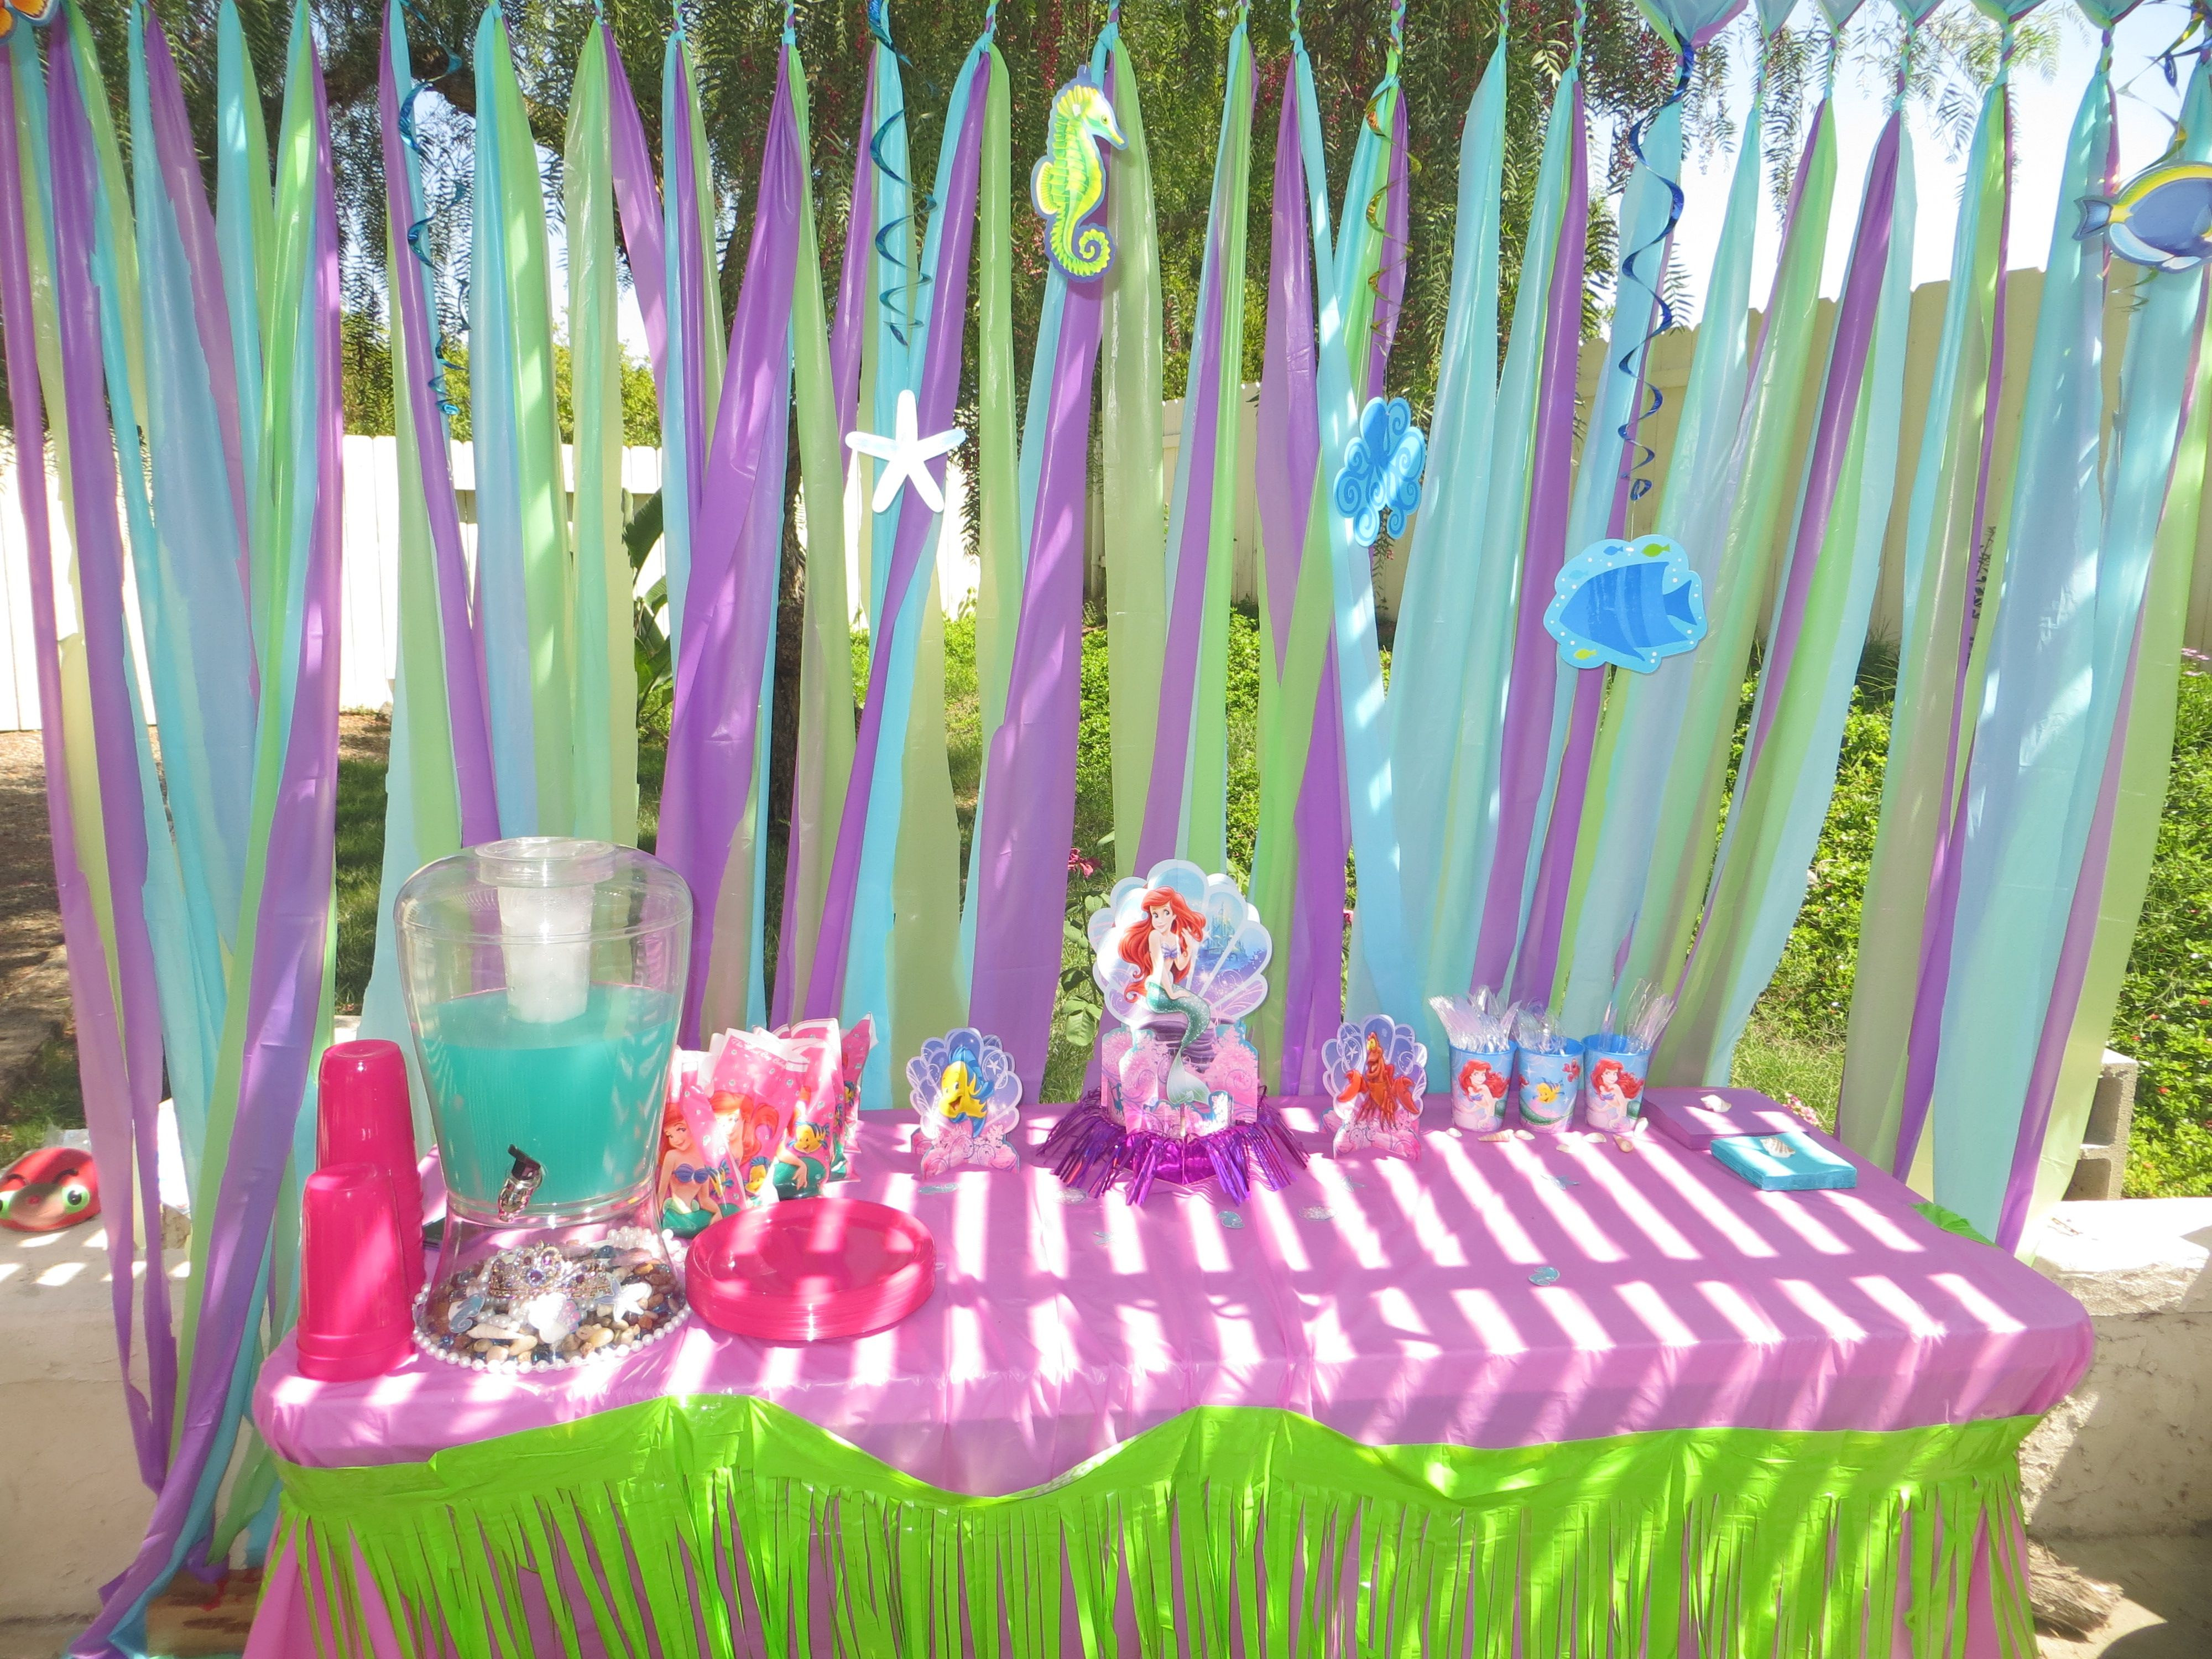 The Little Mermaid Party Ideas Pinterest  Arianna s 3rd birthday party decorations The little